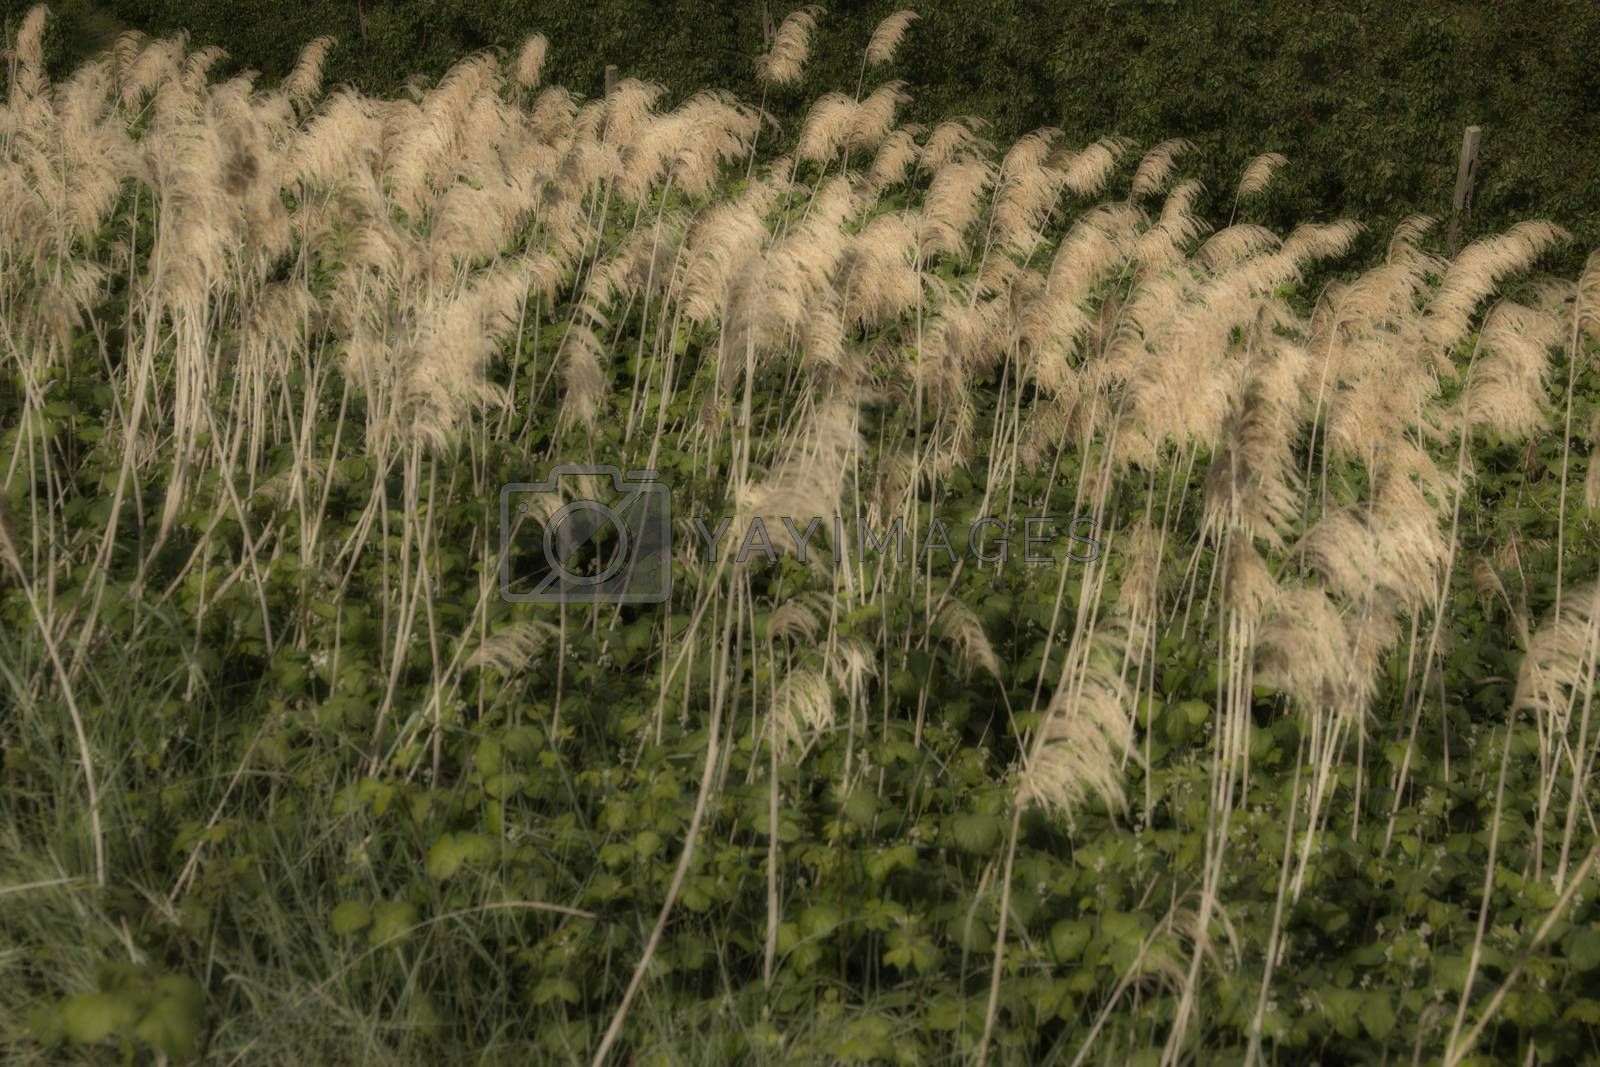 Green weeds and giant canes  in Italian countryside